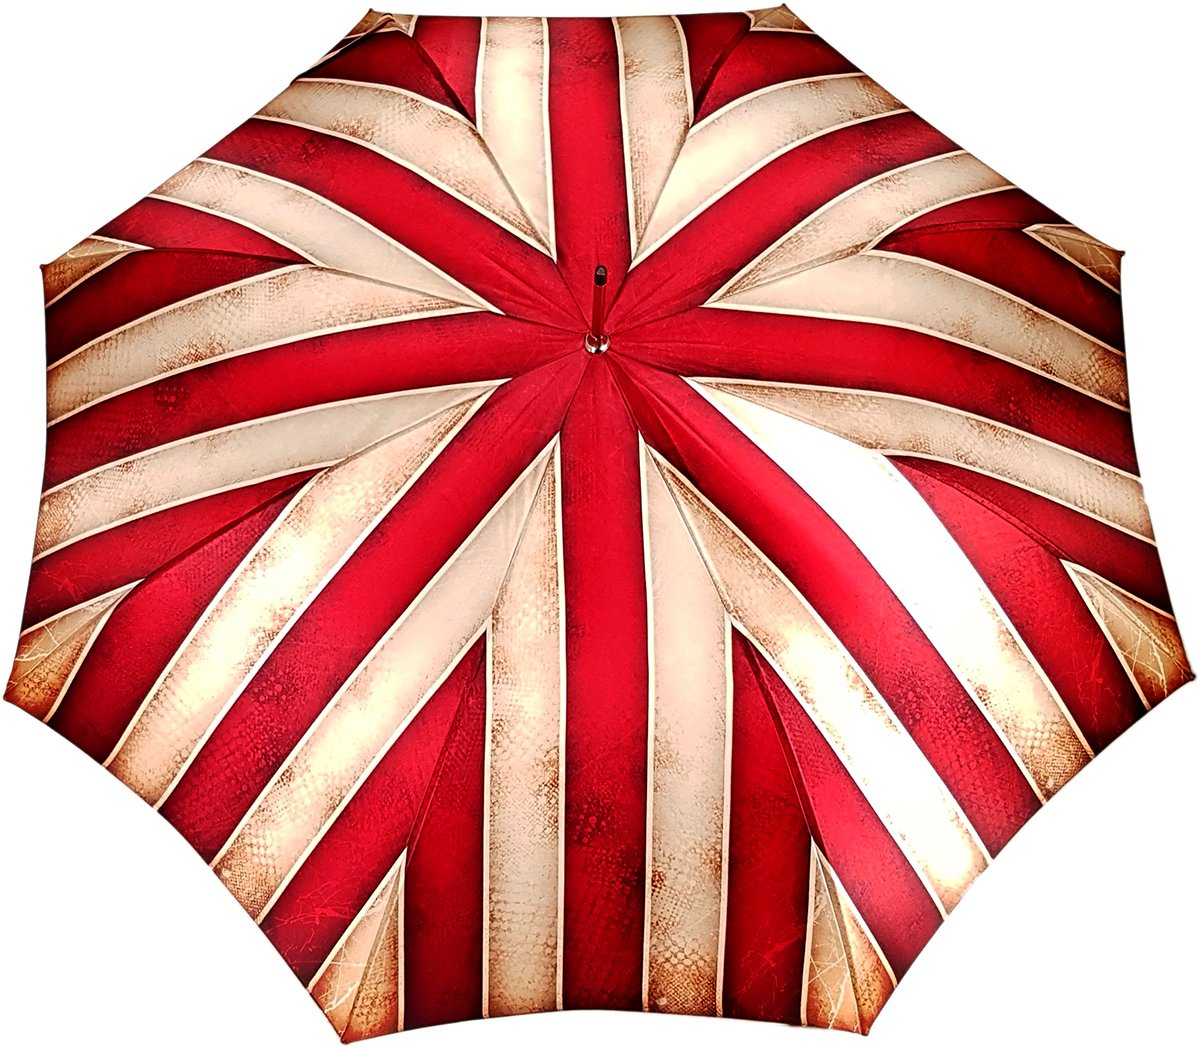 red and cream striped umbrella